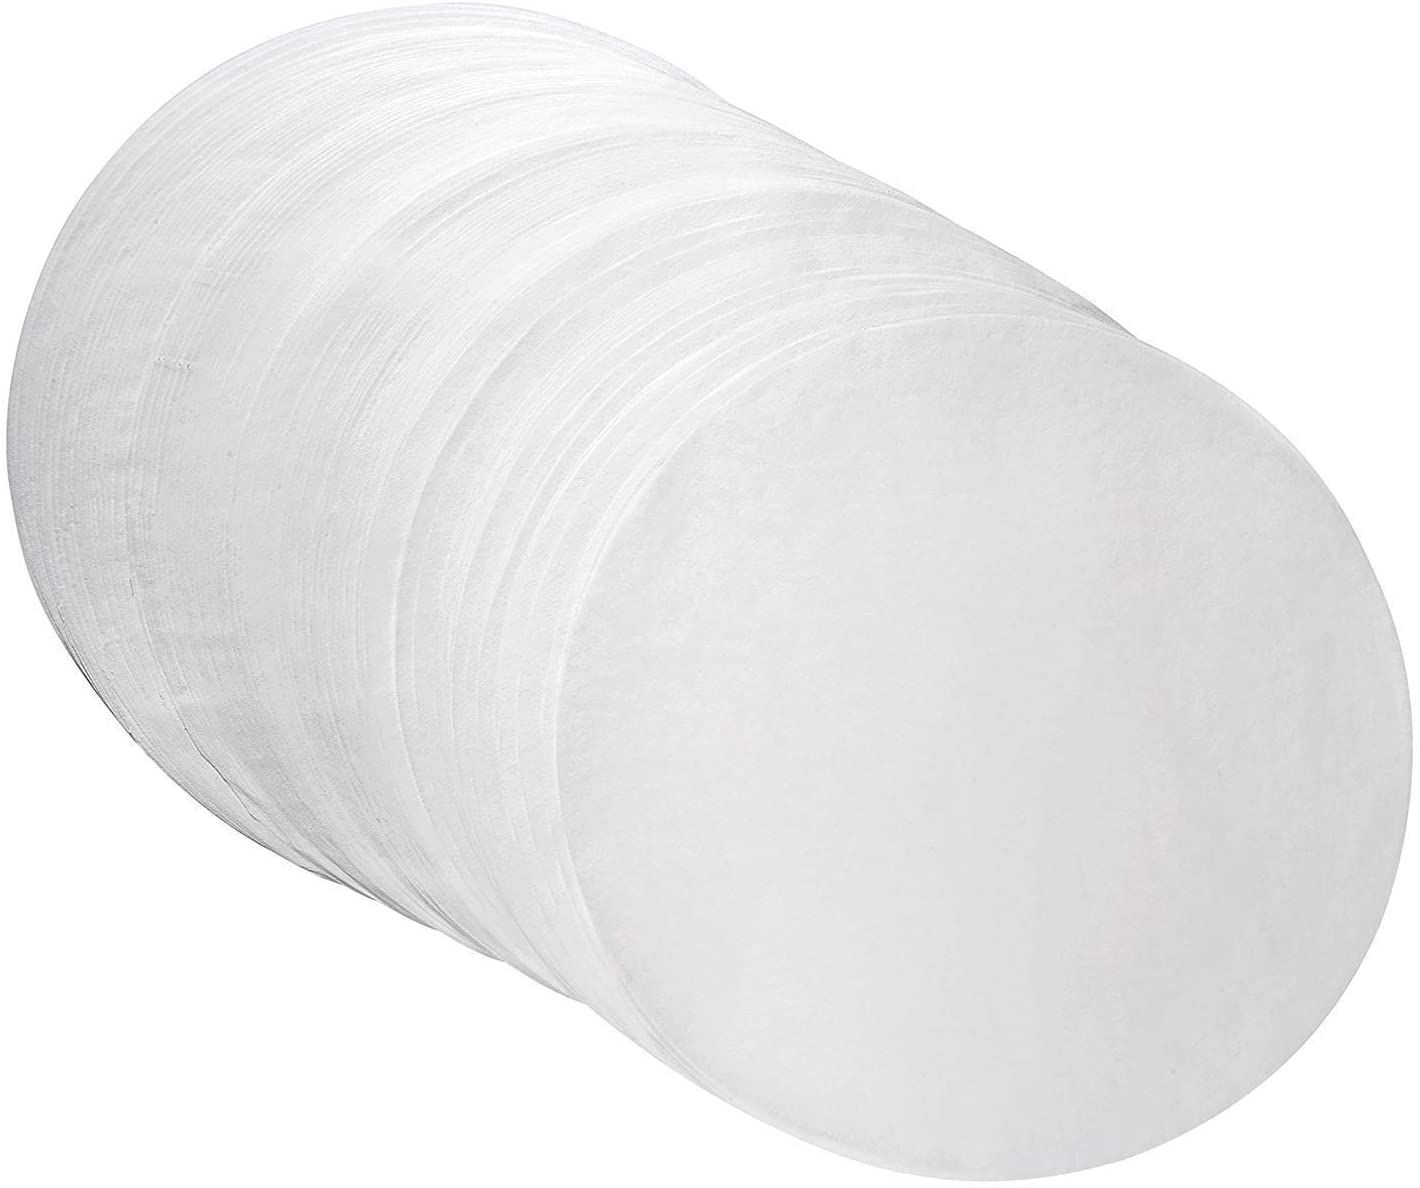 Parchment Paper Baking Circles 8 Inch Diameter, Baking Paper Liners for Baking Cakes, Cooking, Dutch Oven, Air Fryer, Cheesecakes, Tortilla Press (100 PCS)